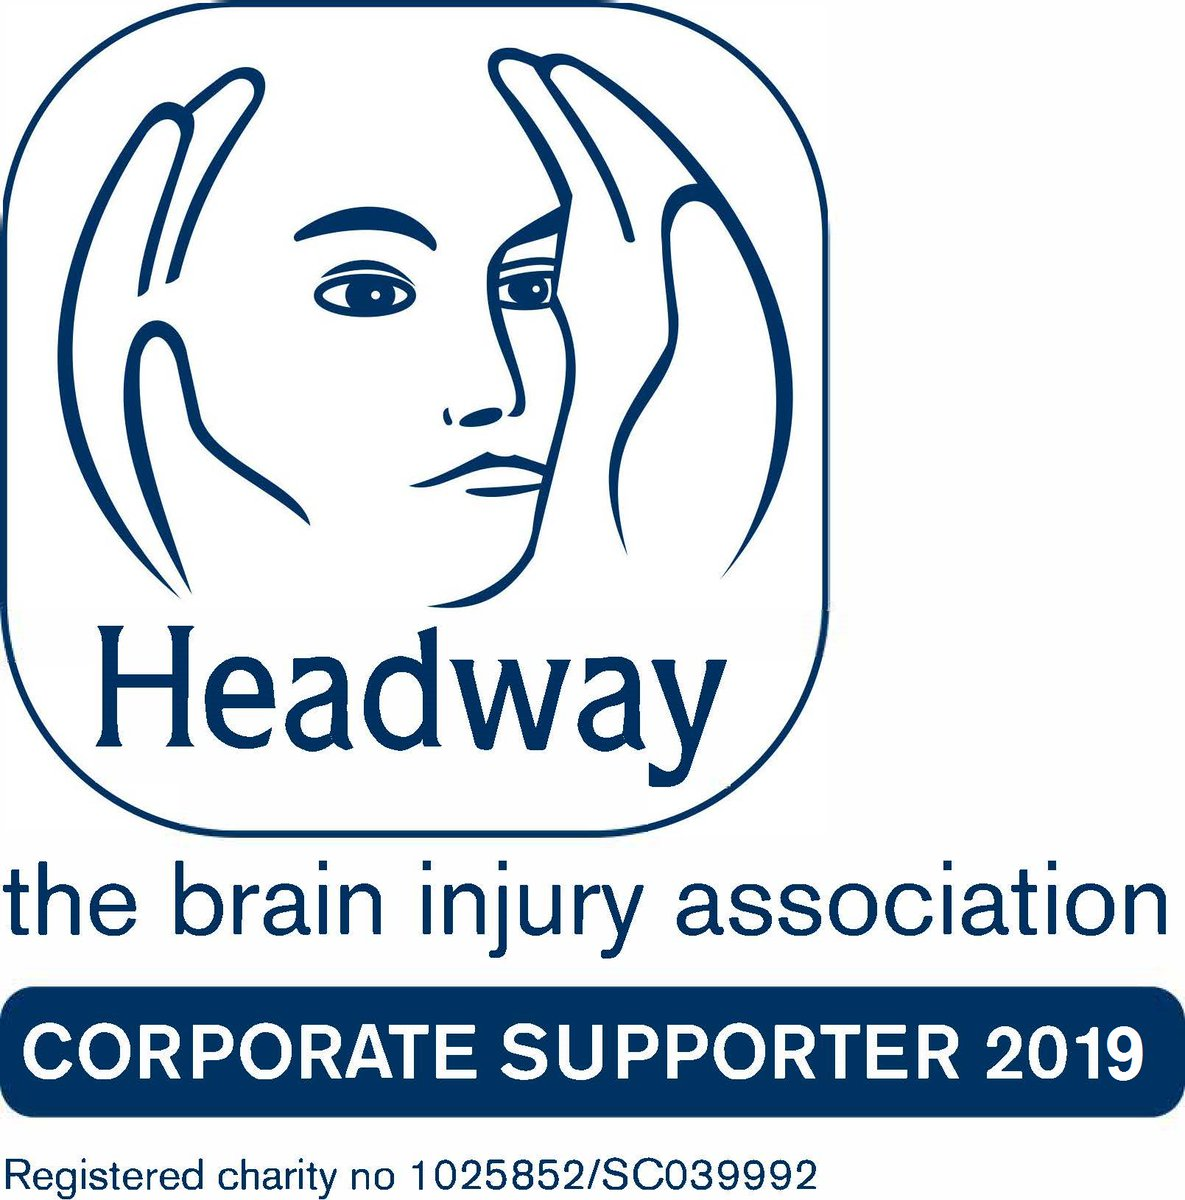 CLCA Nursing is proud to be a corporate member of Headway.  It is a clear demonstration of our commitment to helping brain injury survivors and their families receive the care and information they so vitally need.  @HeadwayUK   #Headway #BrainInjury